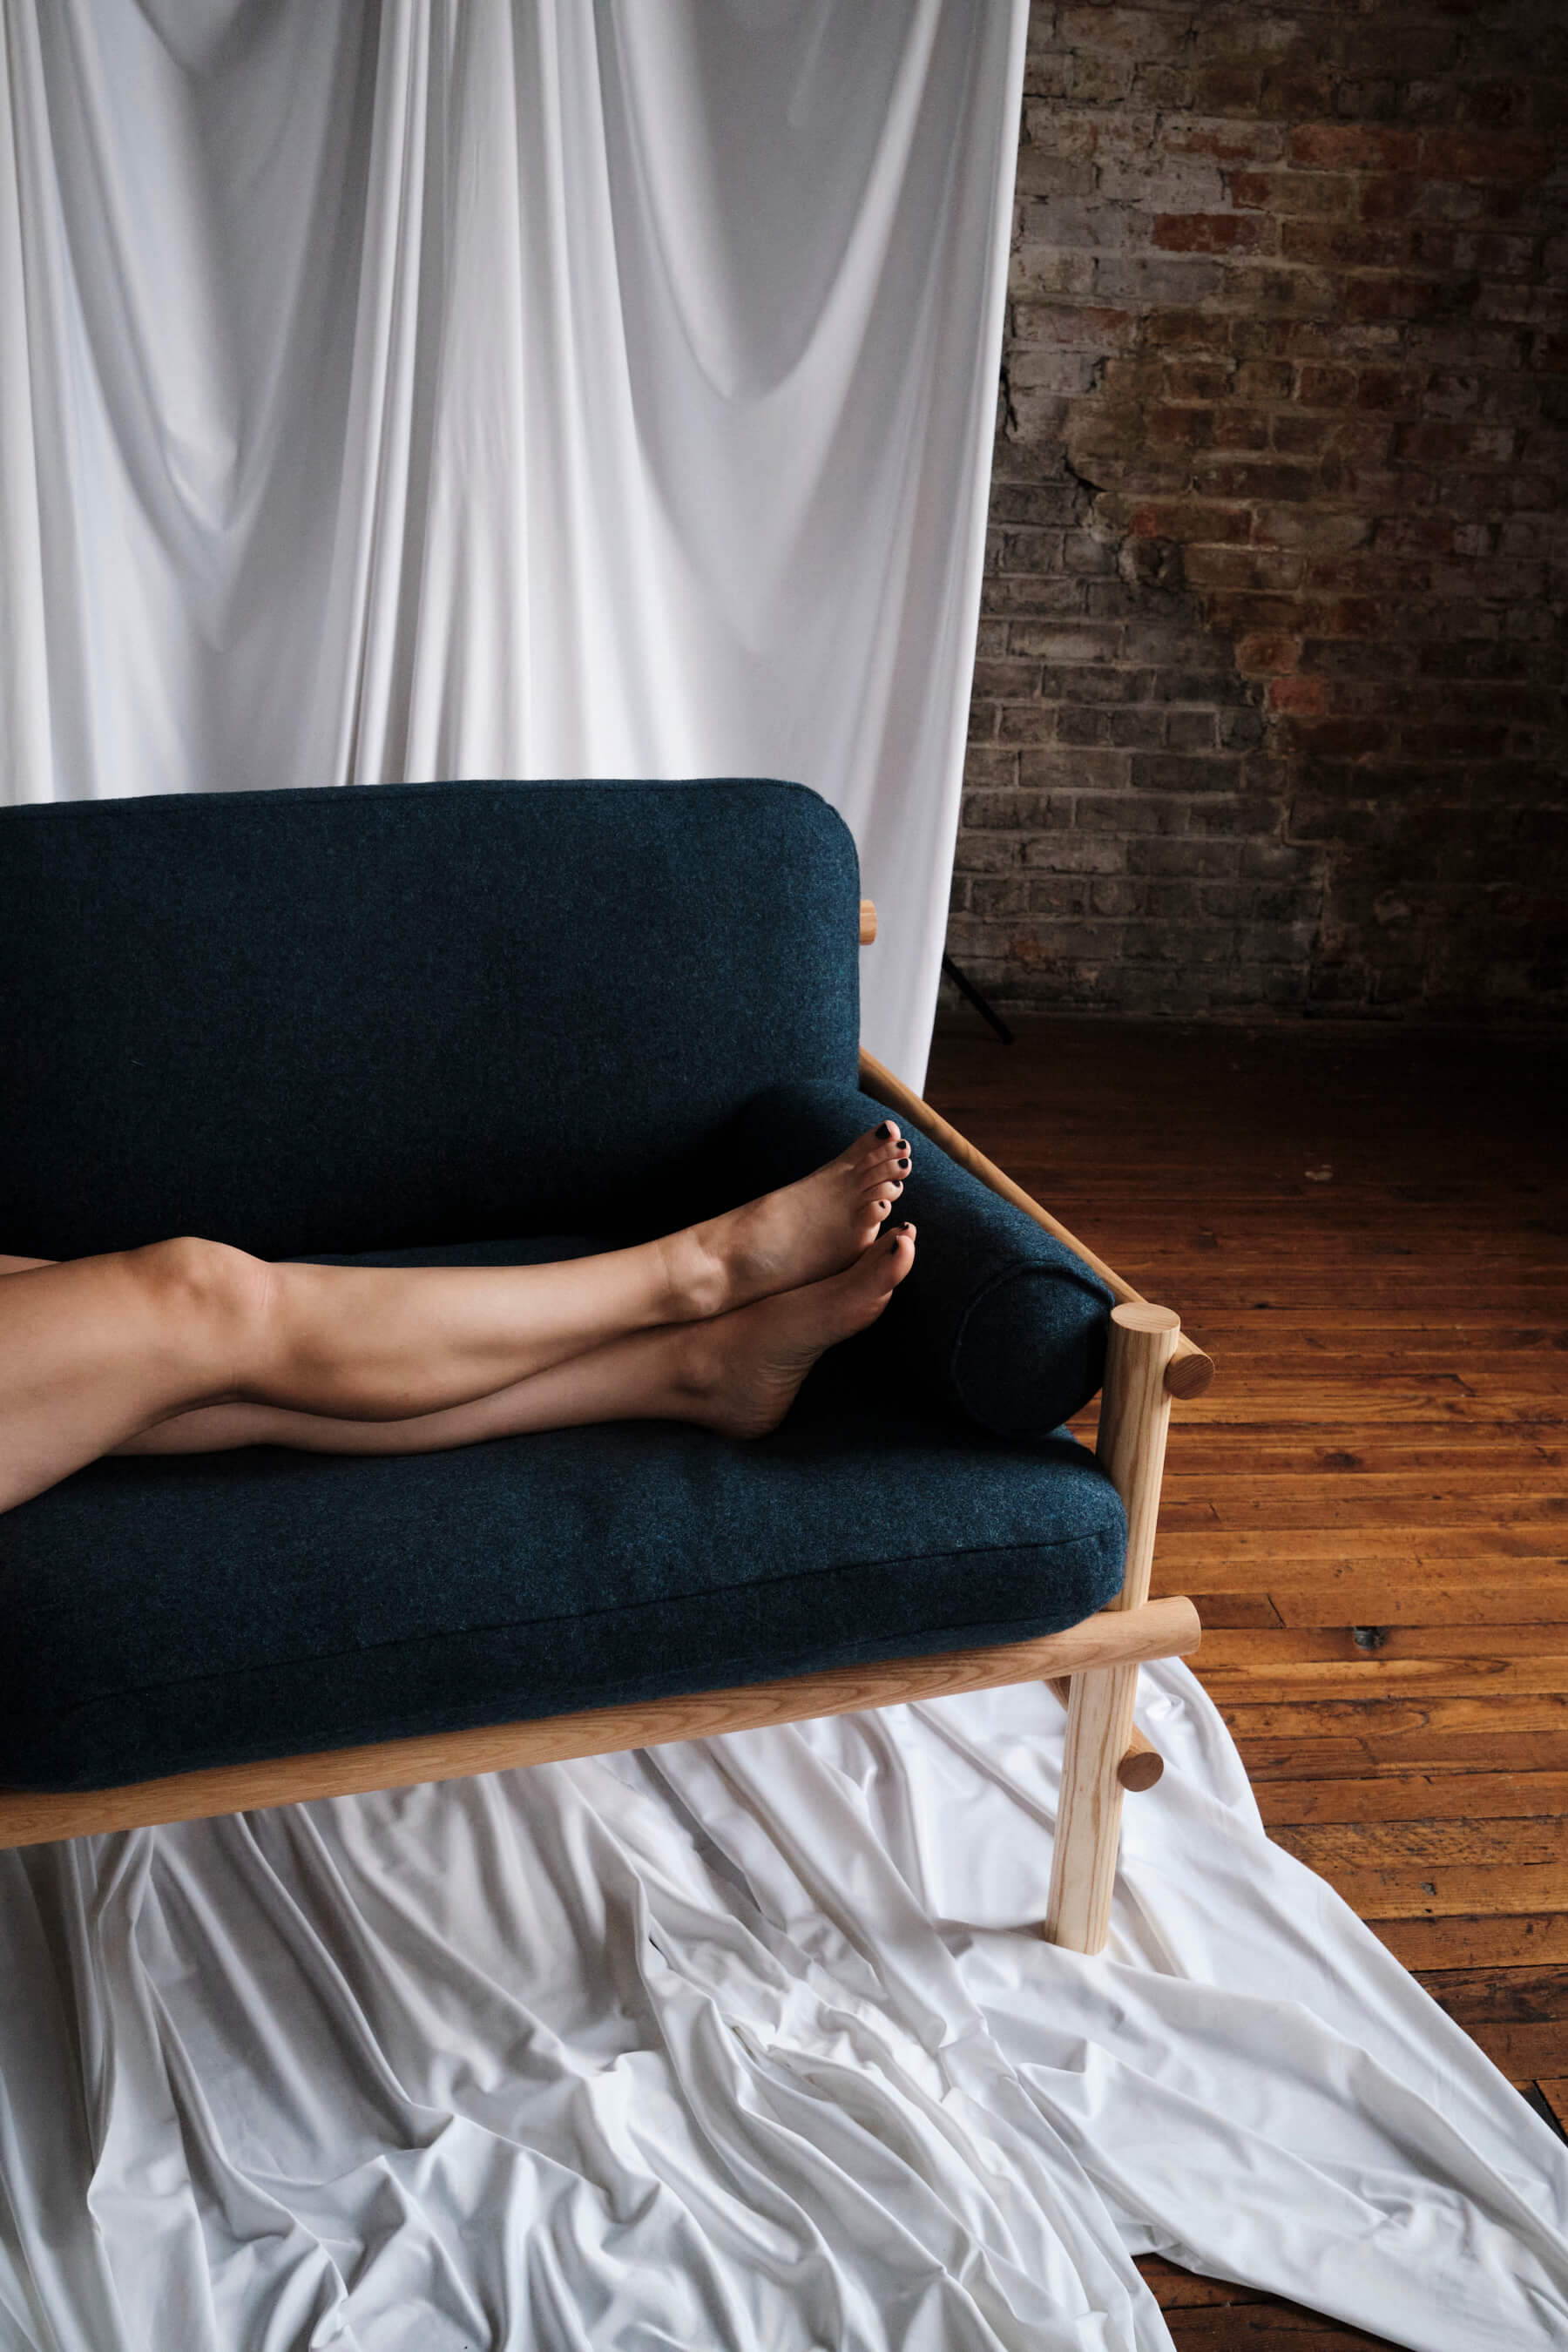 A modern yet vintage looking sofa with an exposed wood frame and blue felt cushions in a old warehouse; a woman has her bare legs up on the sofa, with dark painted nails.